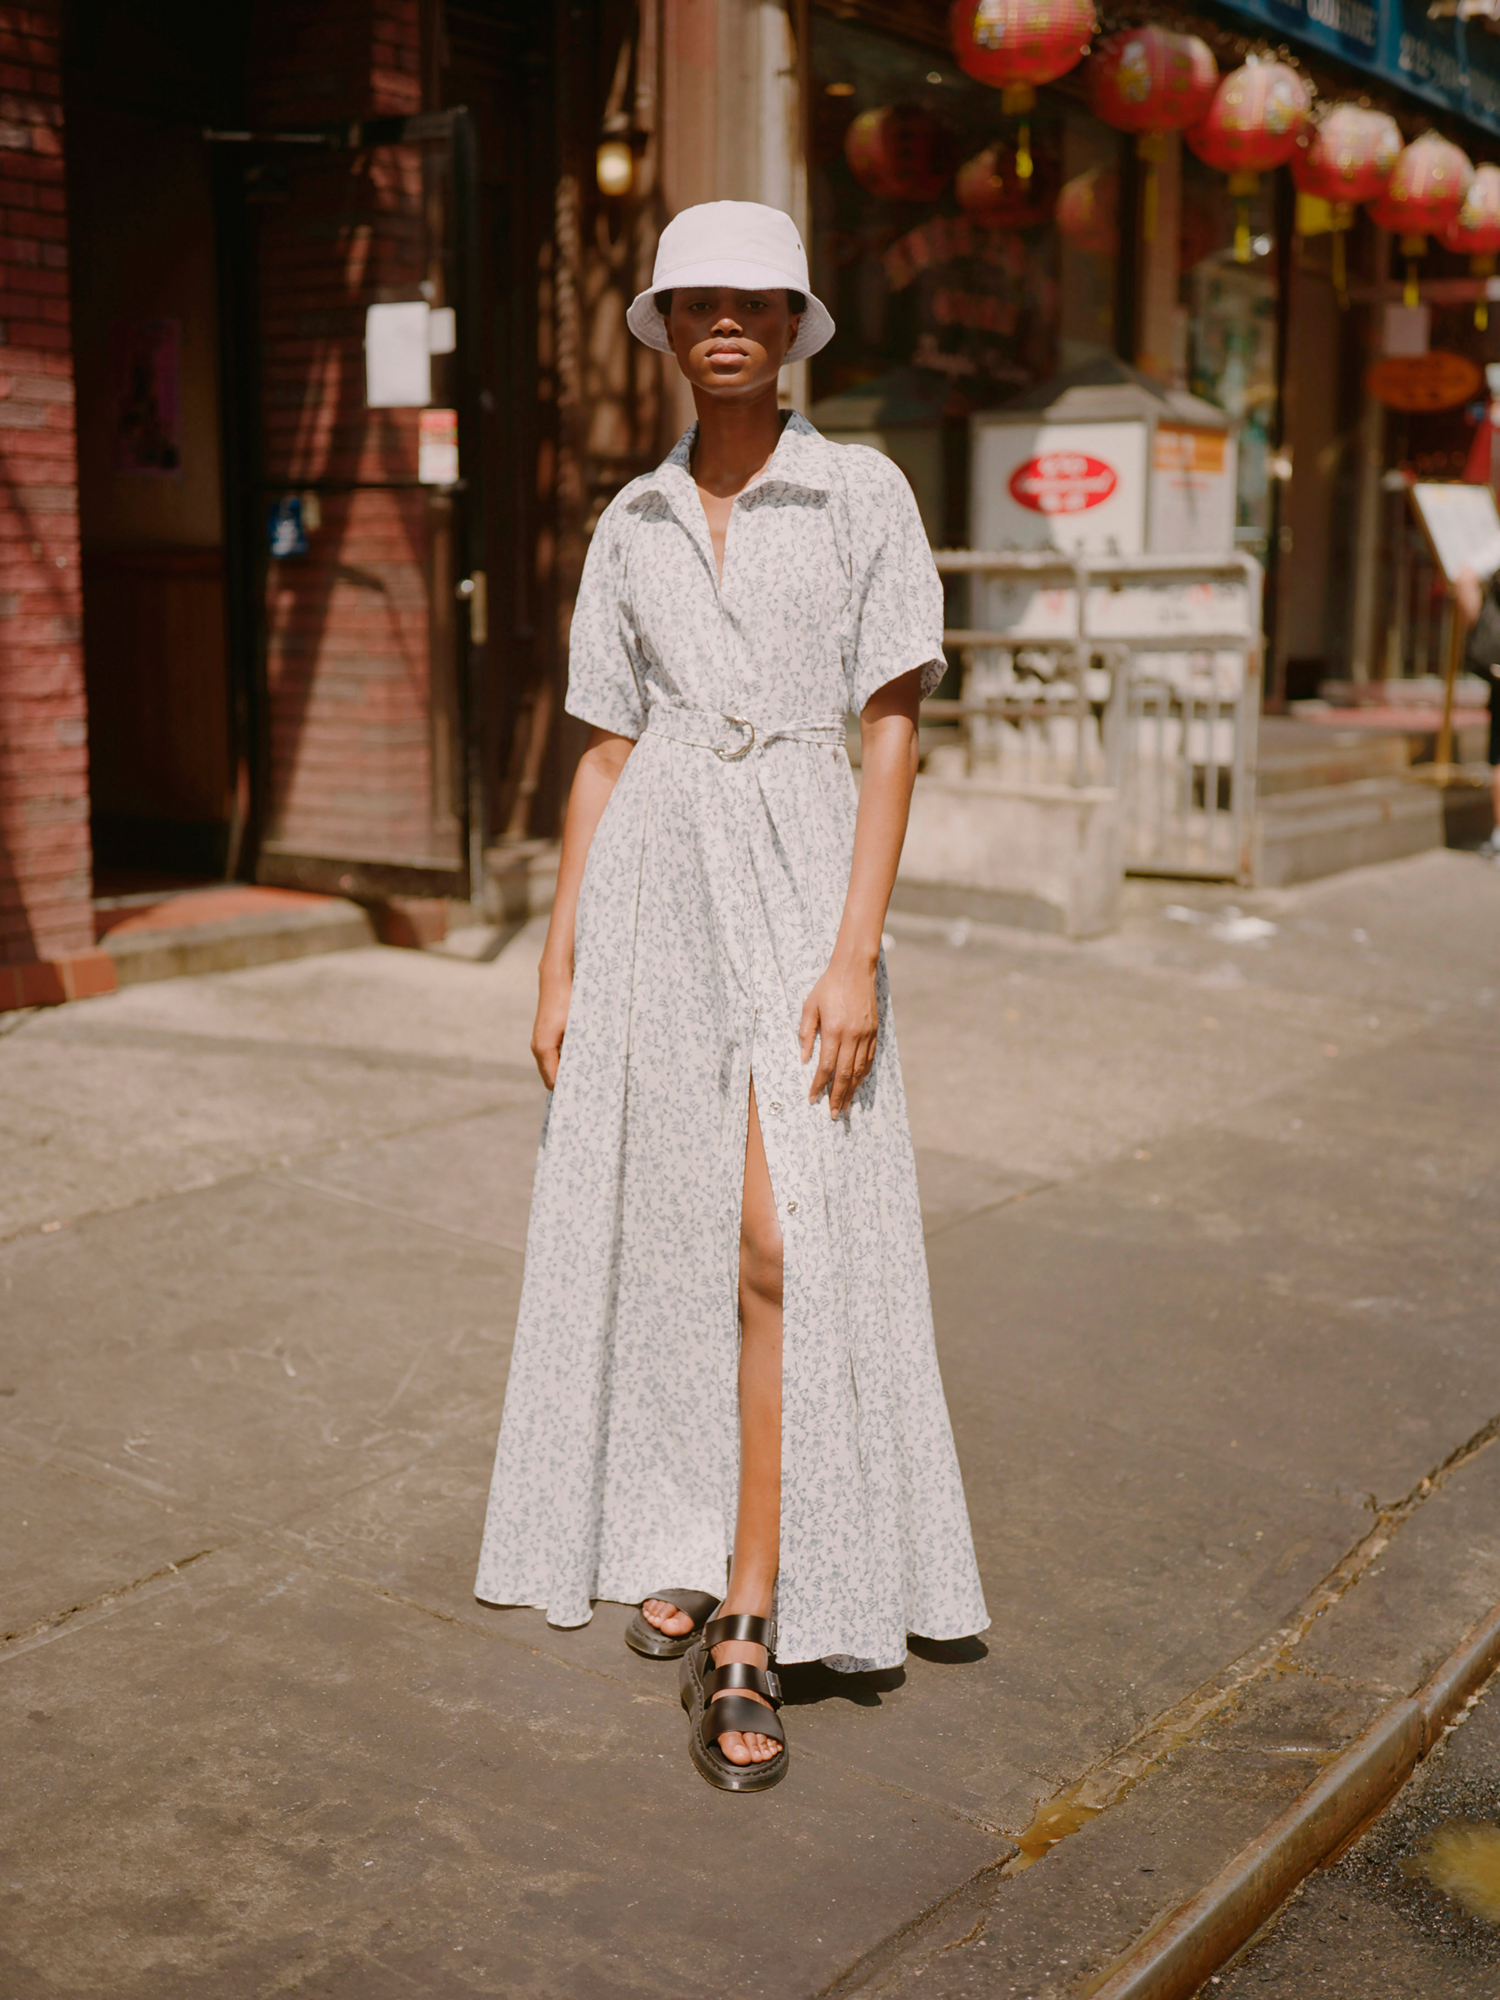 lein fall 2019 belted grey floral patterned short sleeved a-line dress with collar and slit